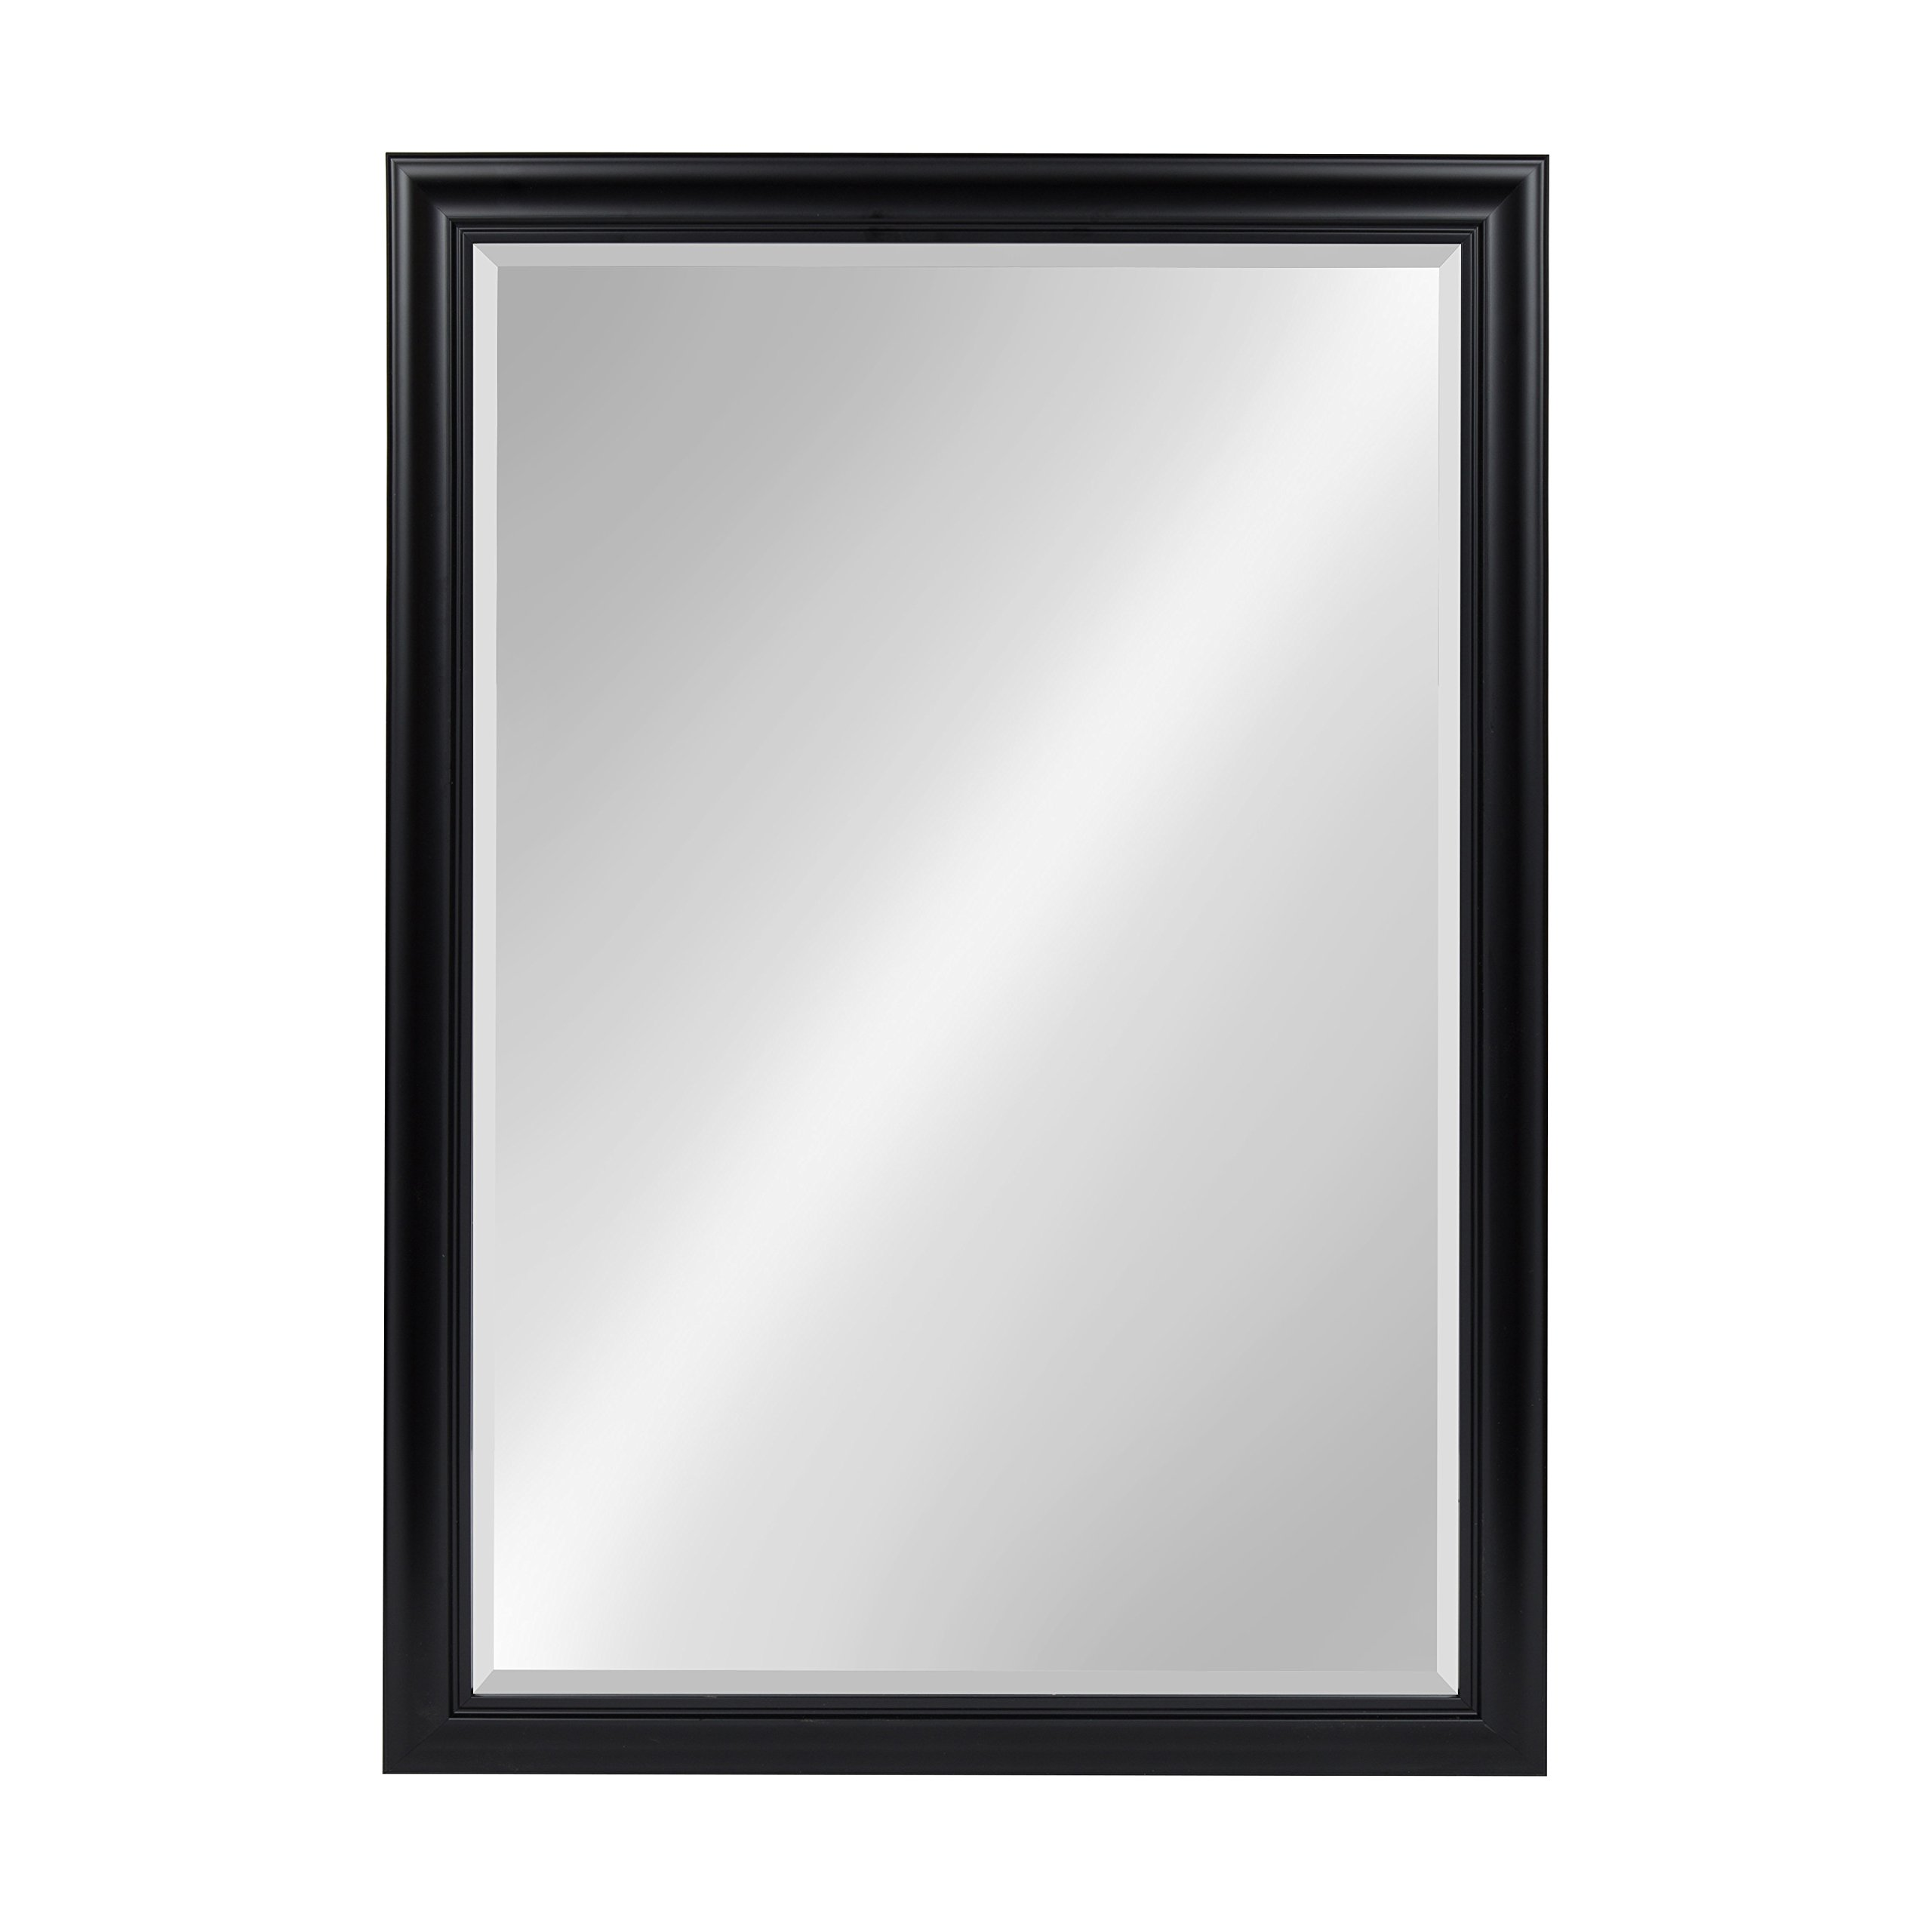 Kate and Laurel Dalat Framed Beveled Wall Mirror, 28x40, Black